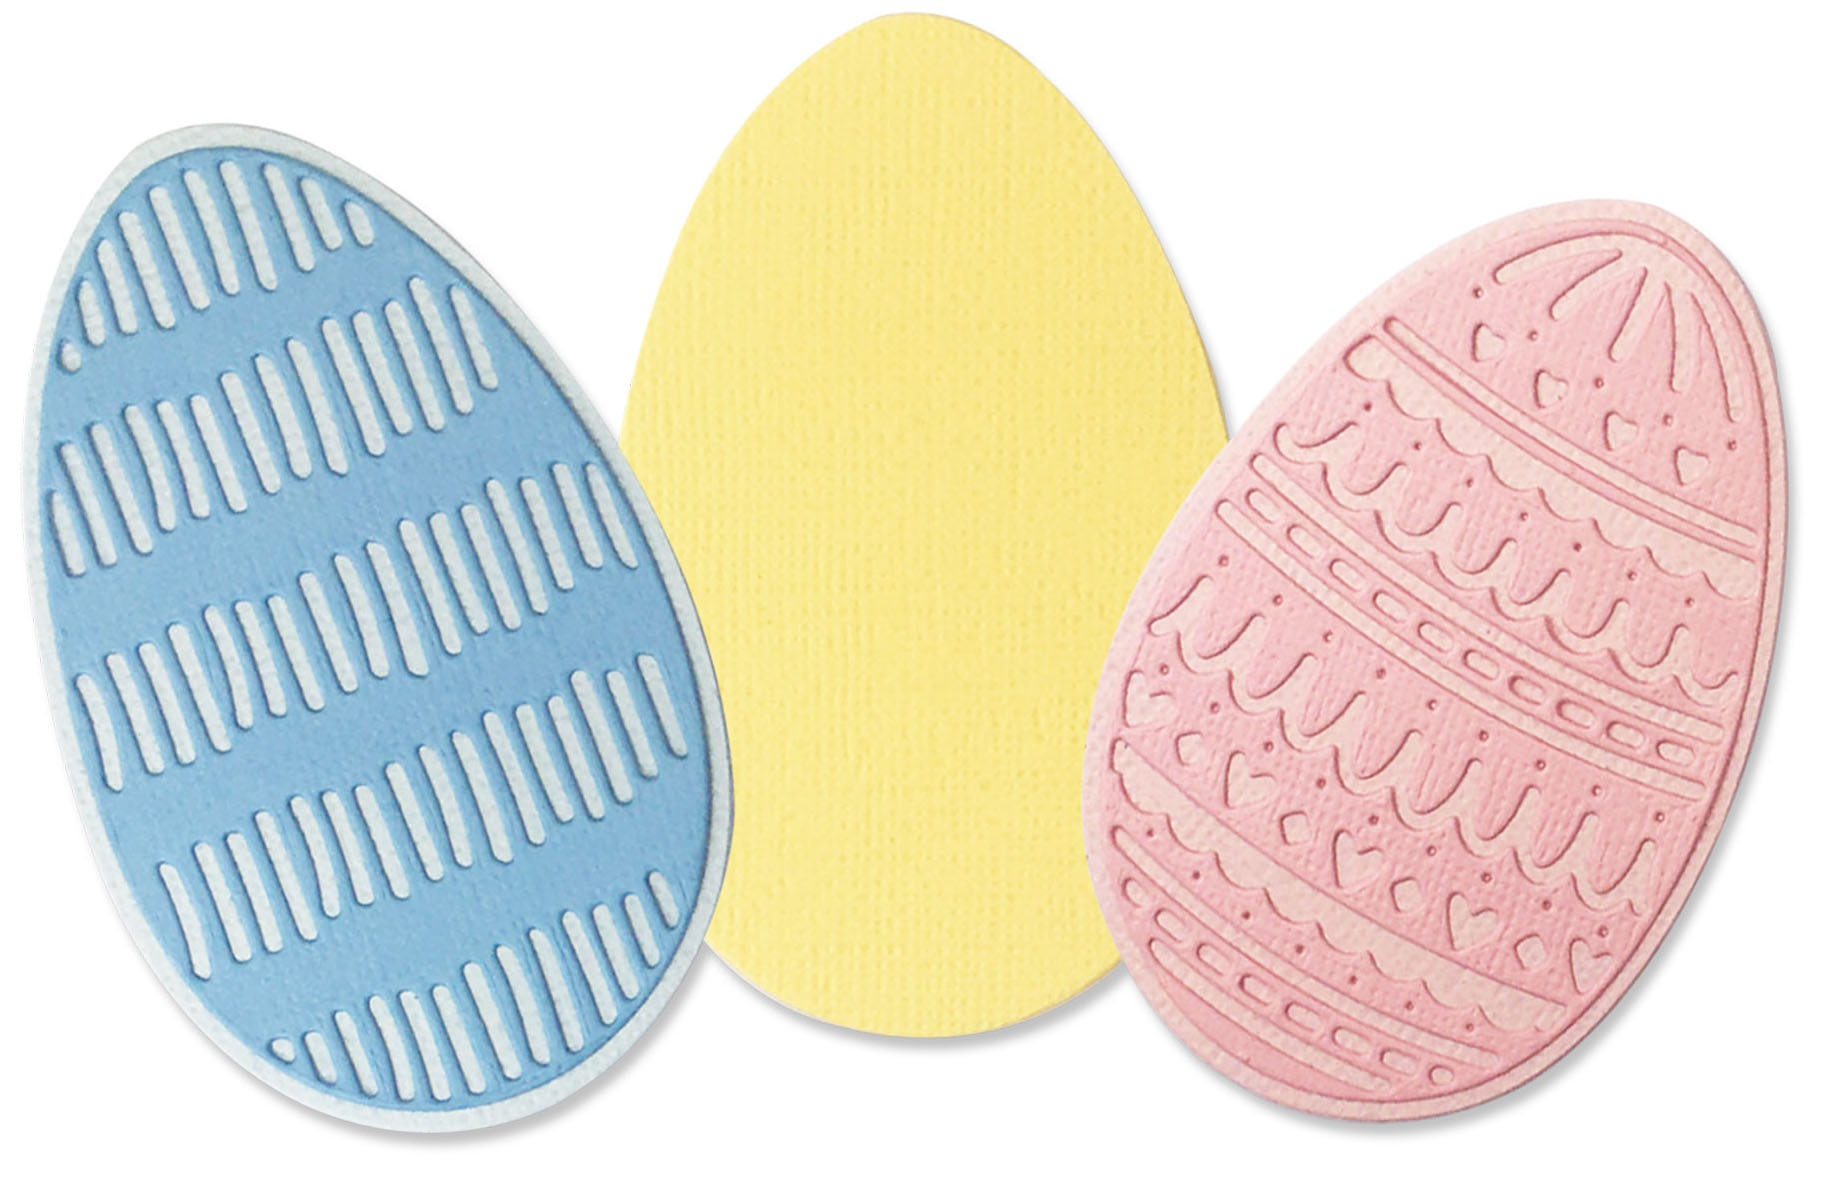 Sizzix Thinlits Dies - Decorative Eggs